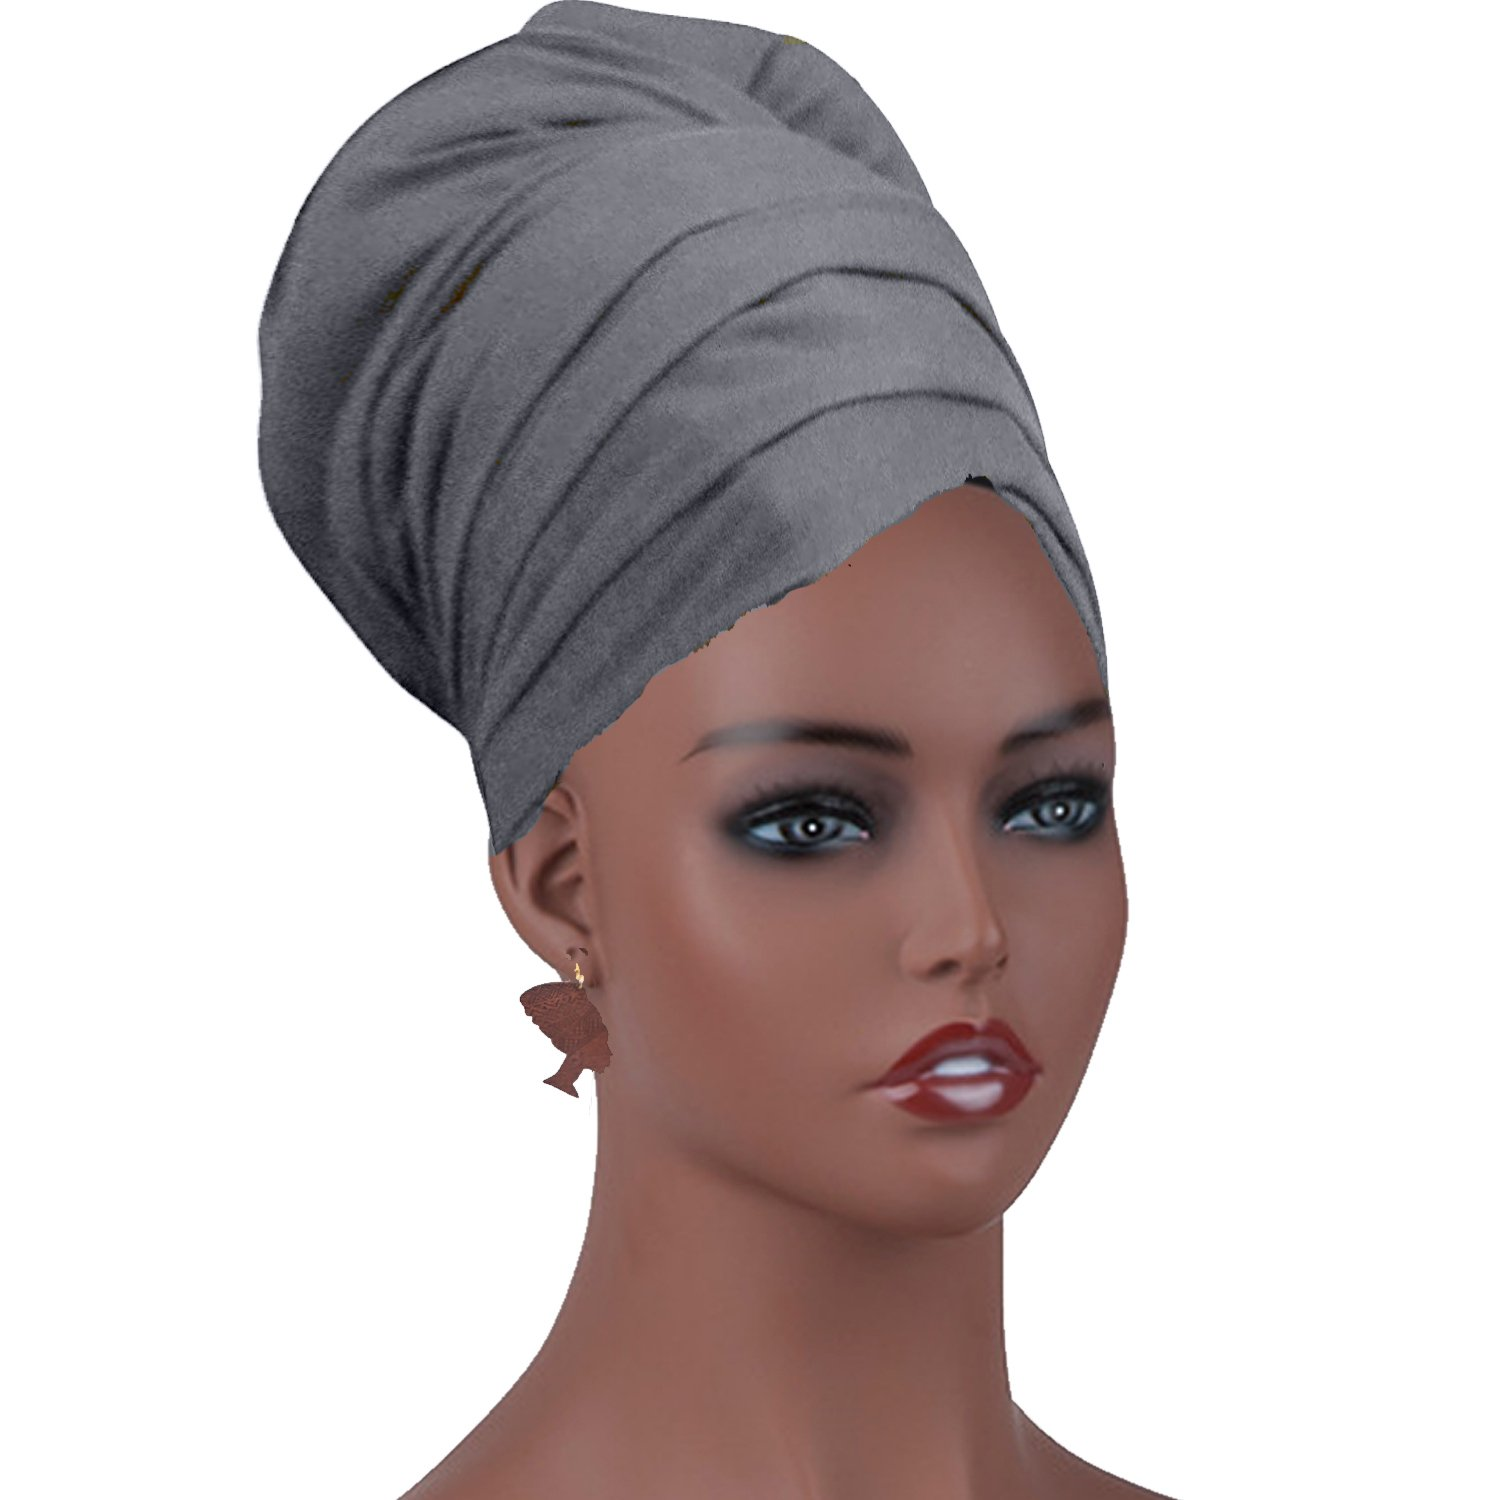 Long Stretch Head Wrap Set- Solid Color African Turban Hair Scarf Tie, Double Sided Edge Control Hair Brush Comb Combo,Wooden Colored Turban African Woman Earrings,Wig Cap (OneSize, Grey) by qnprt (Image #2)